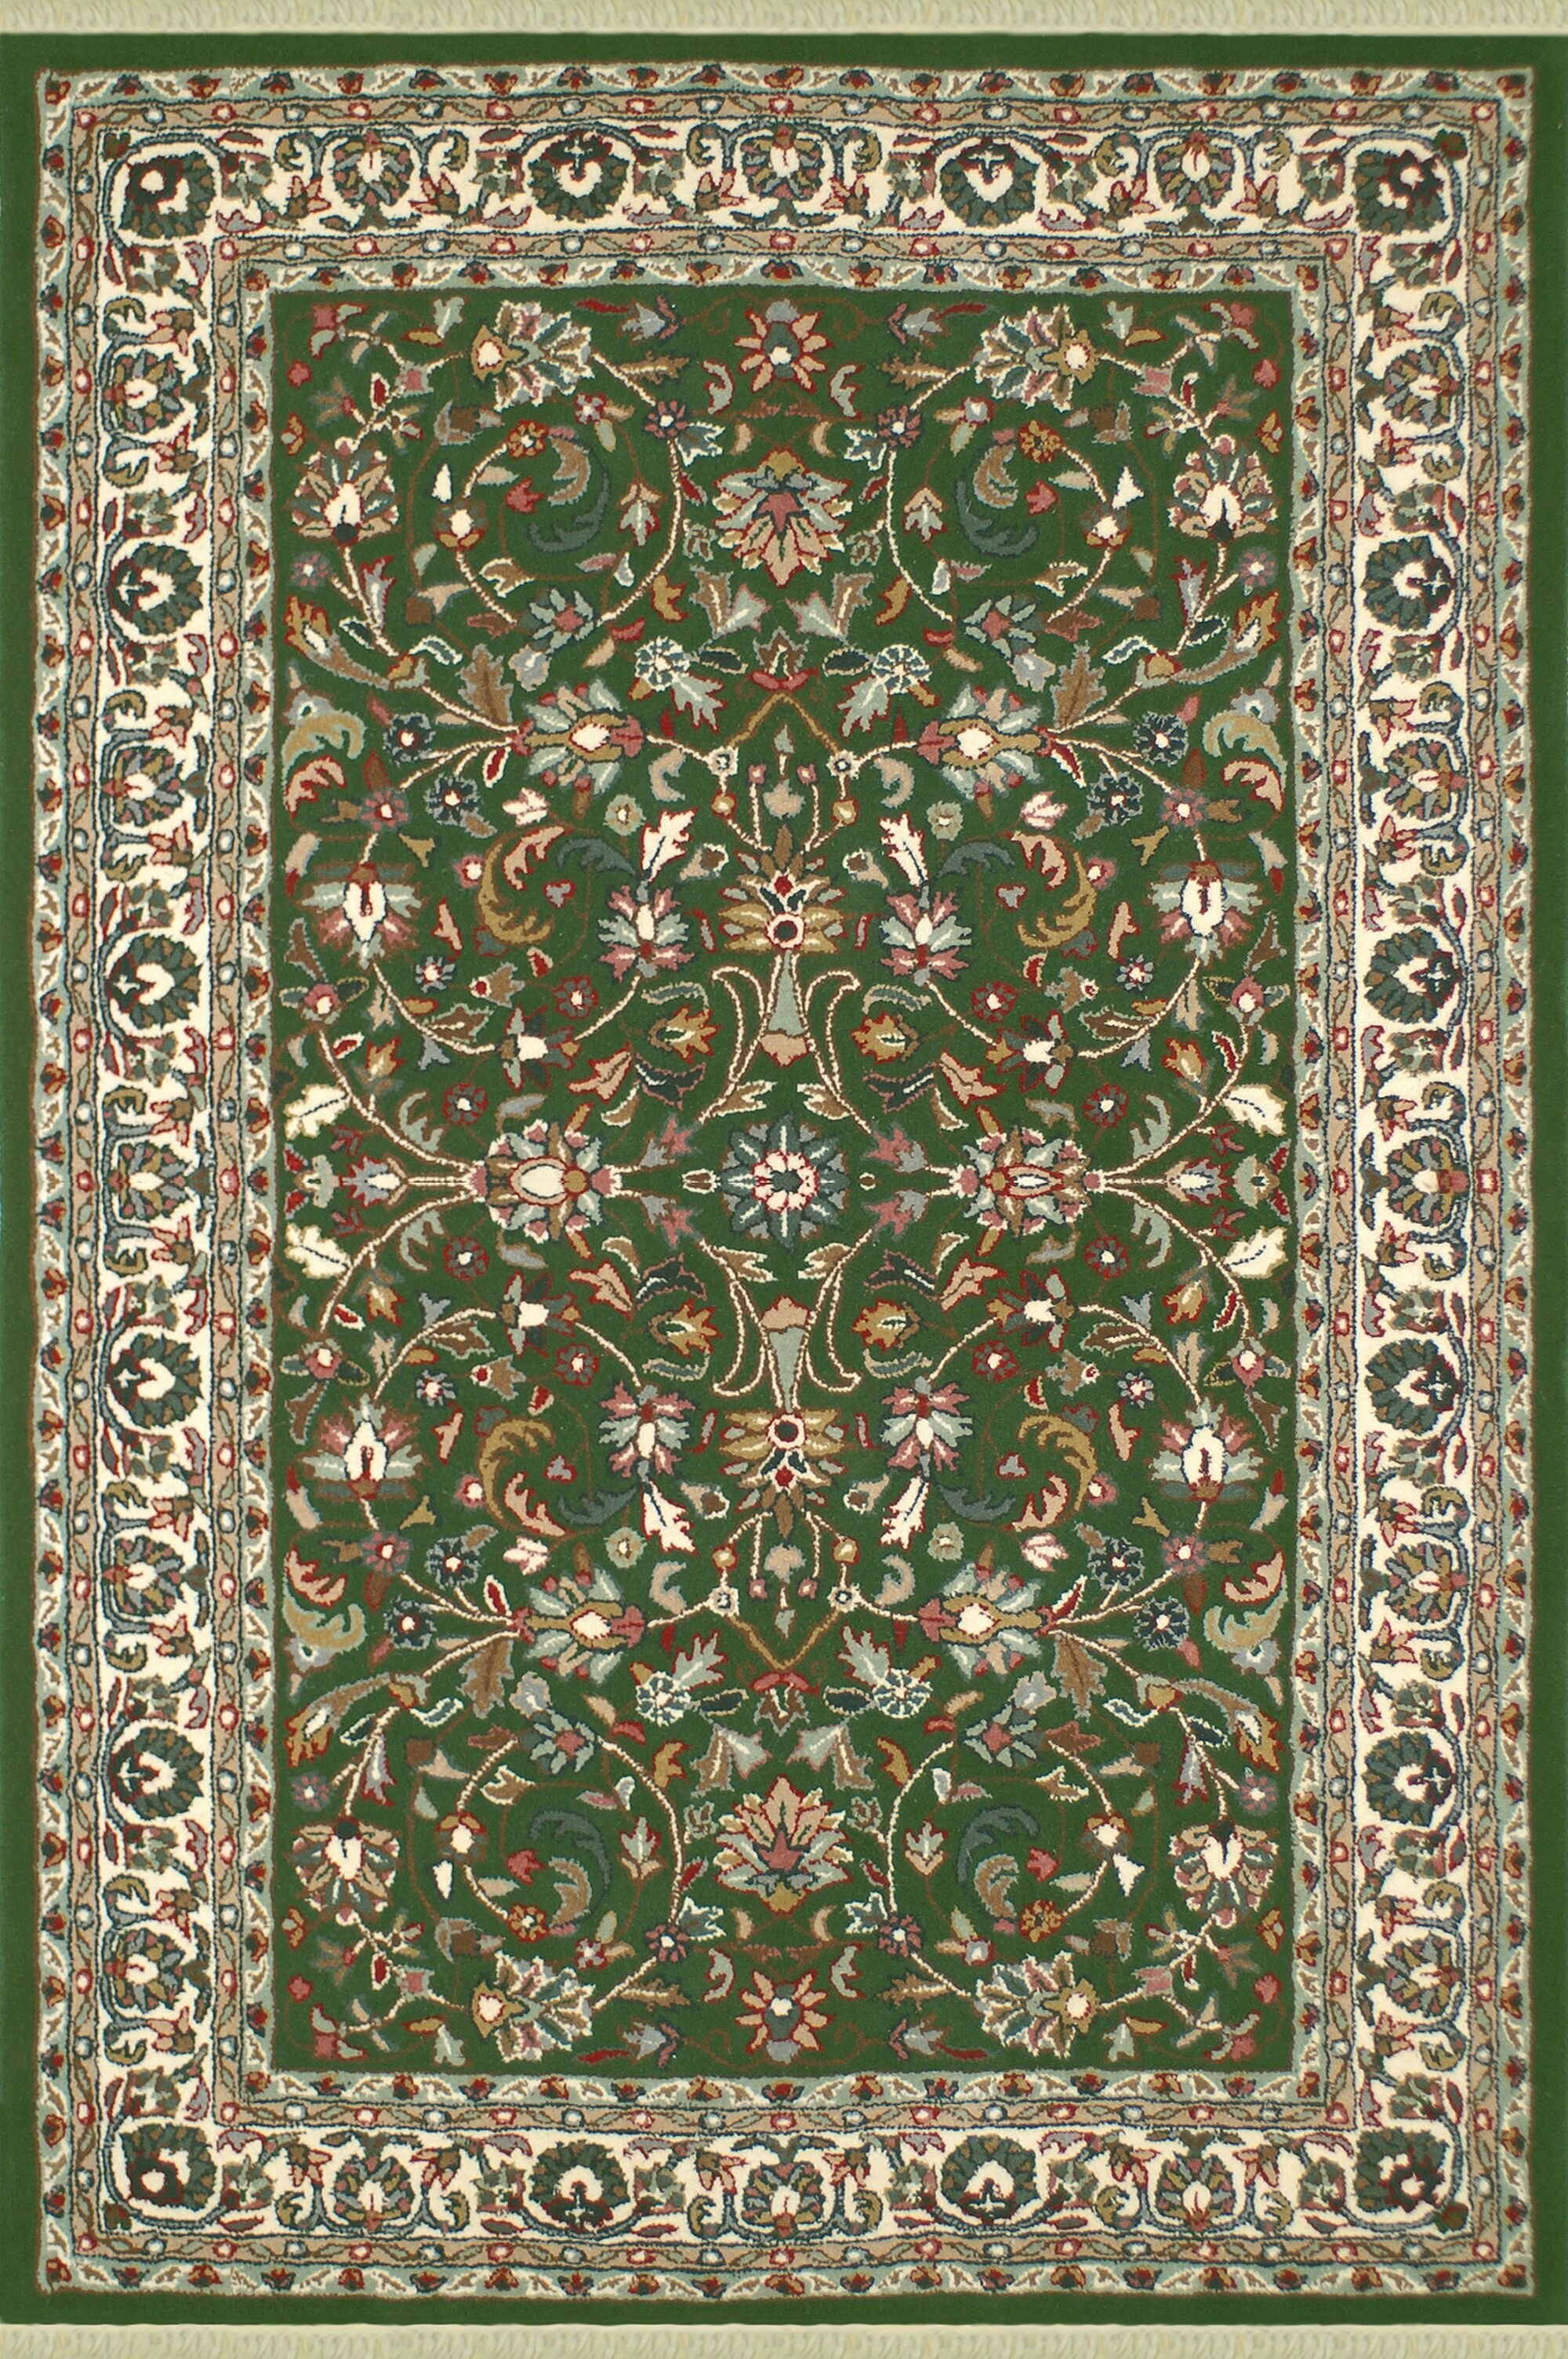 American Home Classic Kashan Emerald/Ivory Area Rug Rug Size: 8'6